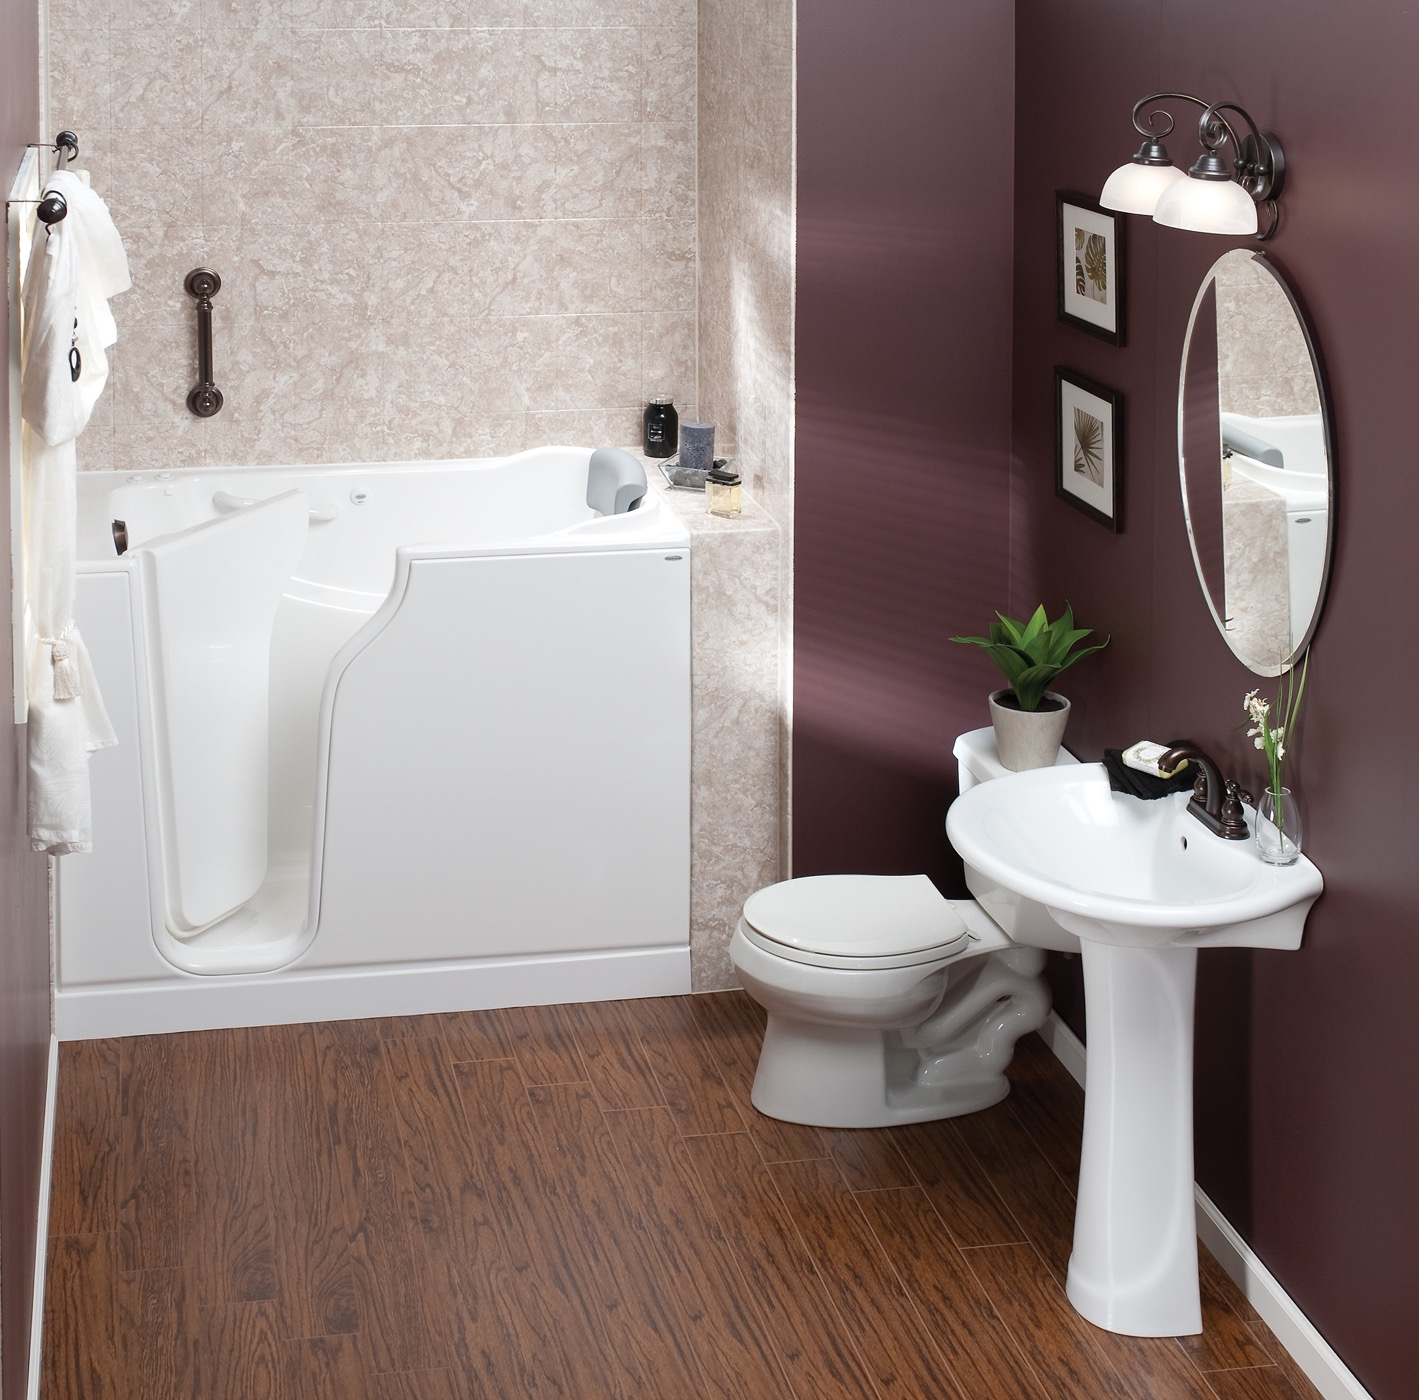 Modern Small Walk In Tubs Bathroom Interior (View 7 of 15)